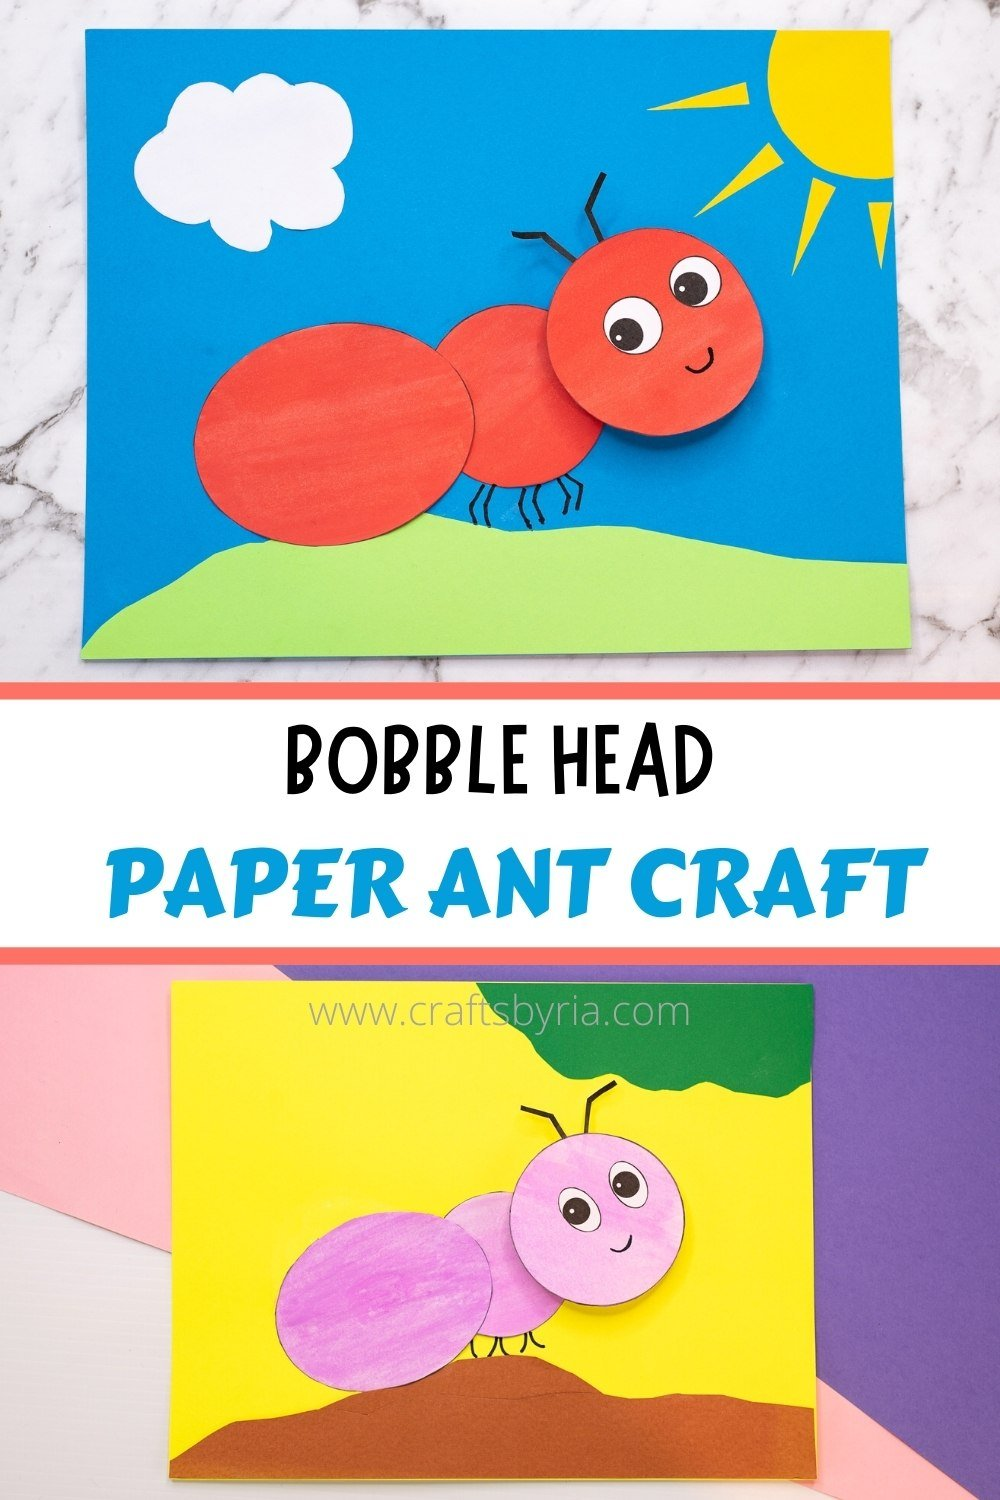 ant craft ideas- image for Pinterest